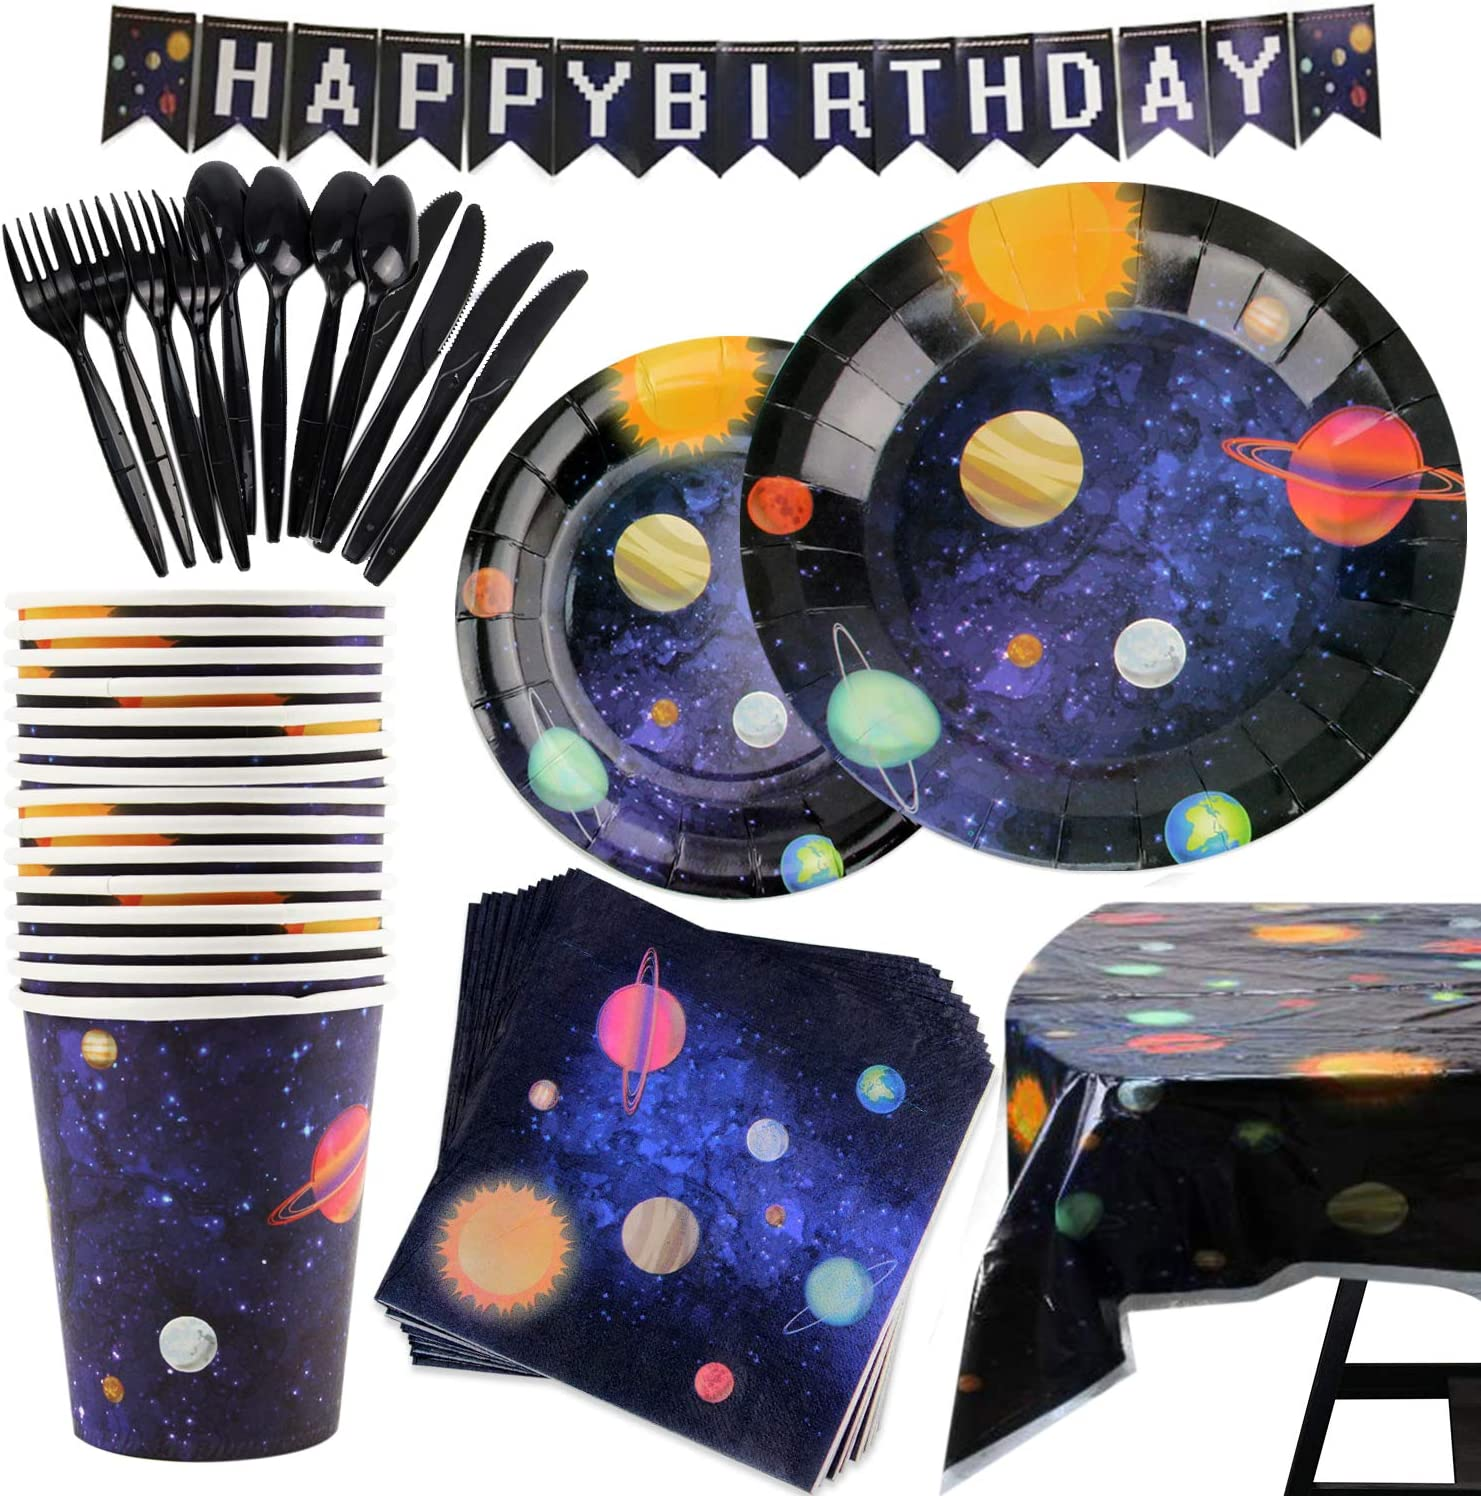 177 Piece Outer Space Party Supplies Set Including Banner, Plates, Cups, Napkins, Tablecloth, Spoon, Fork, and Knives, Serves 25